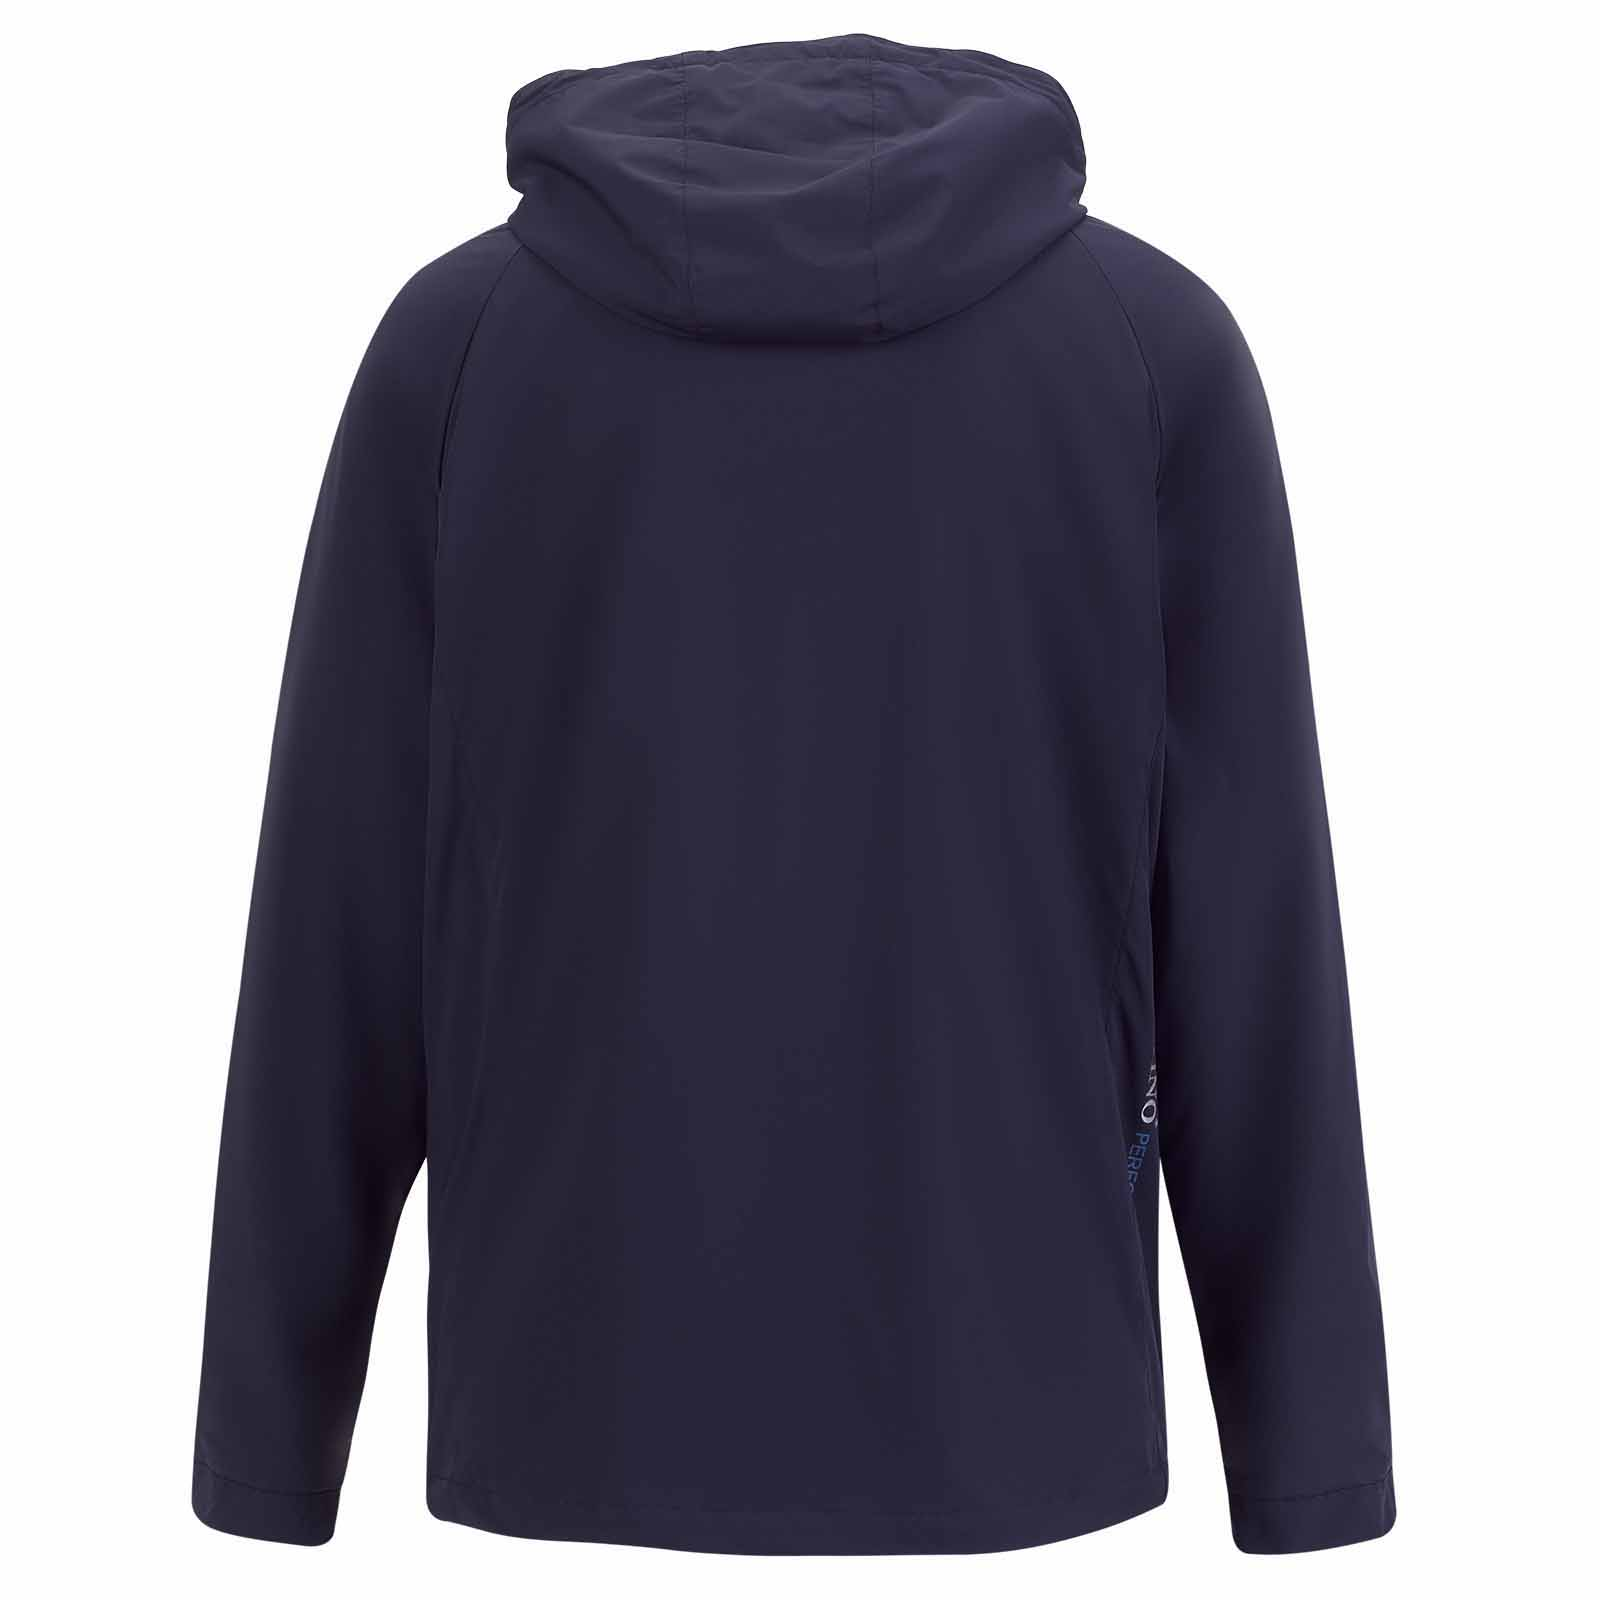 Herren Micro Stretch Übergangsjacke mit Cold Protection Funktion